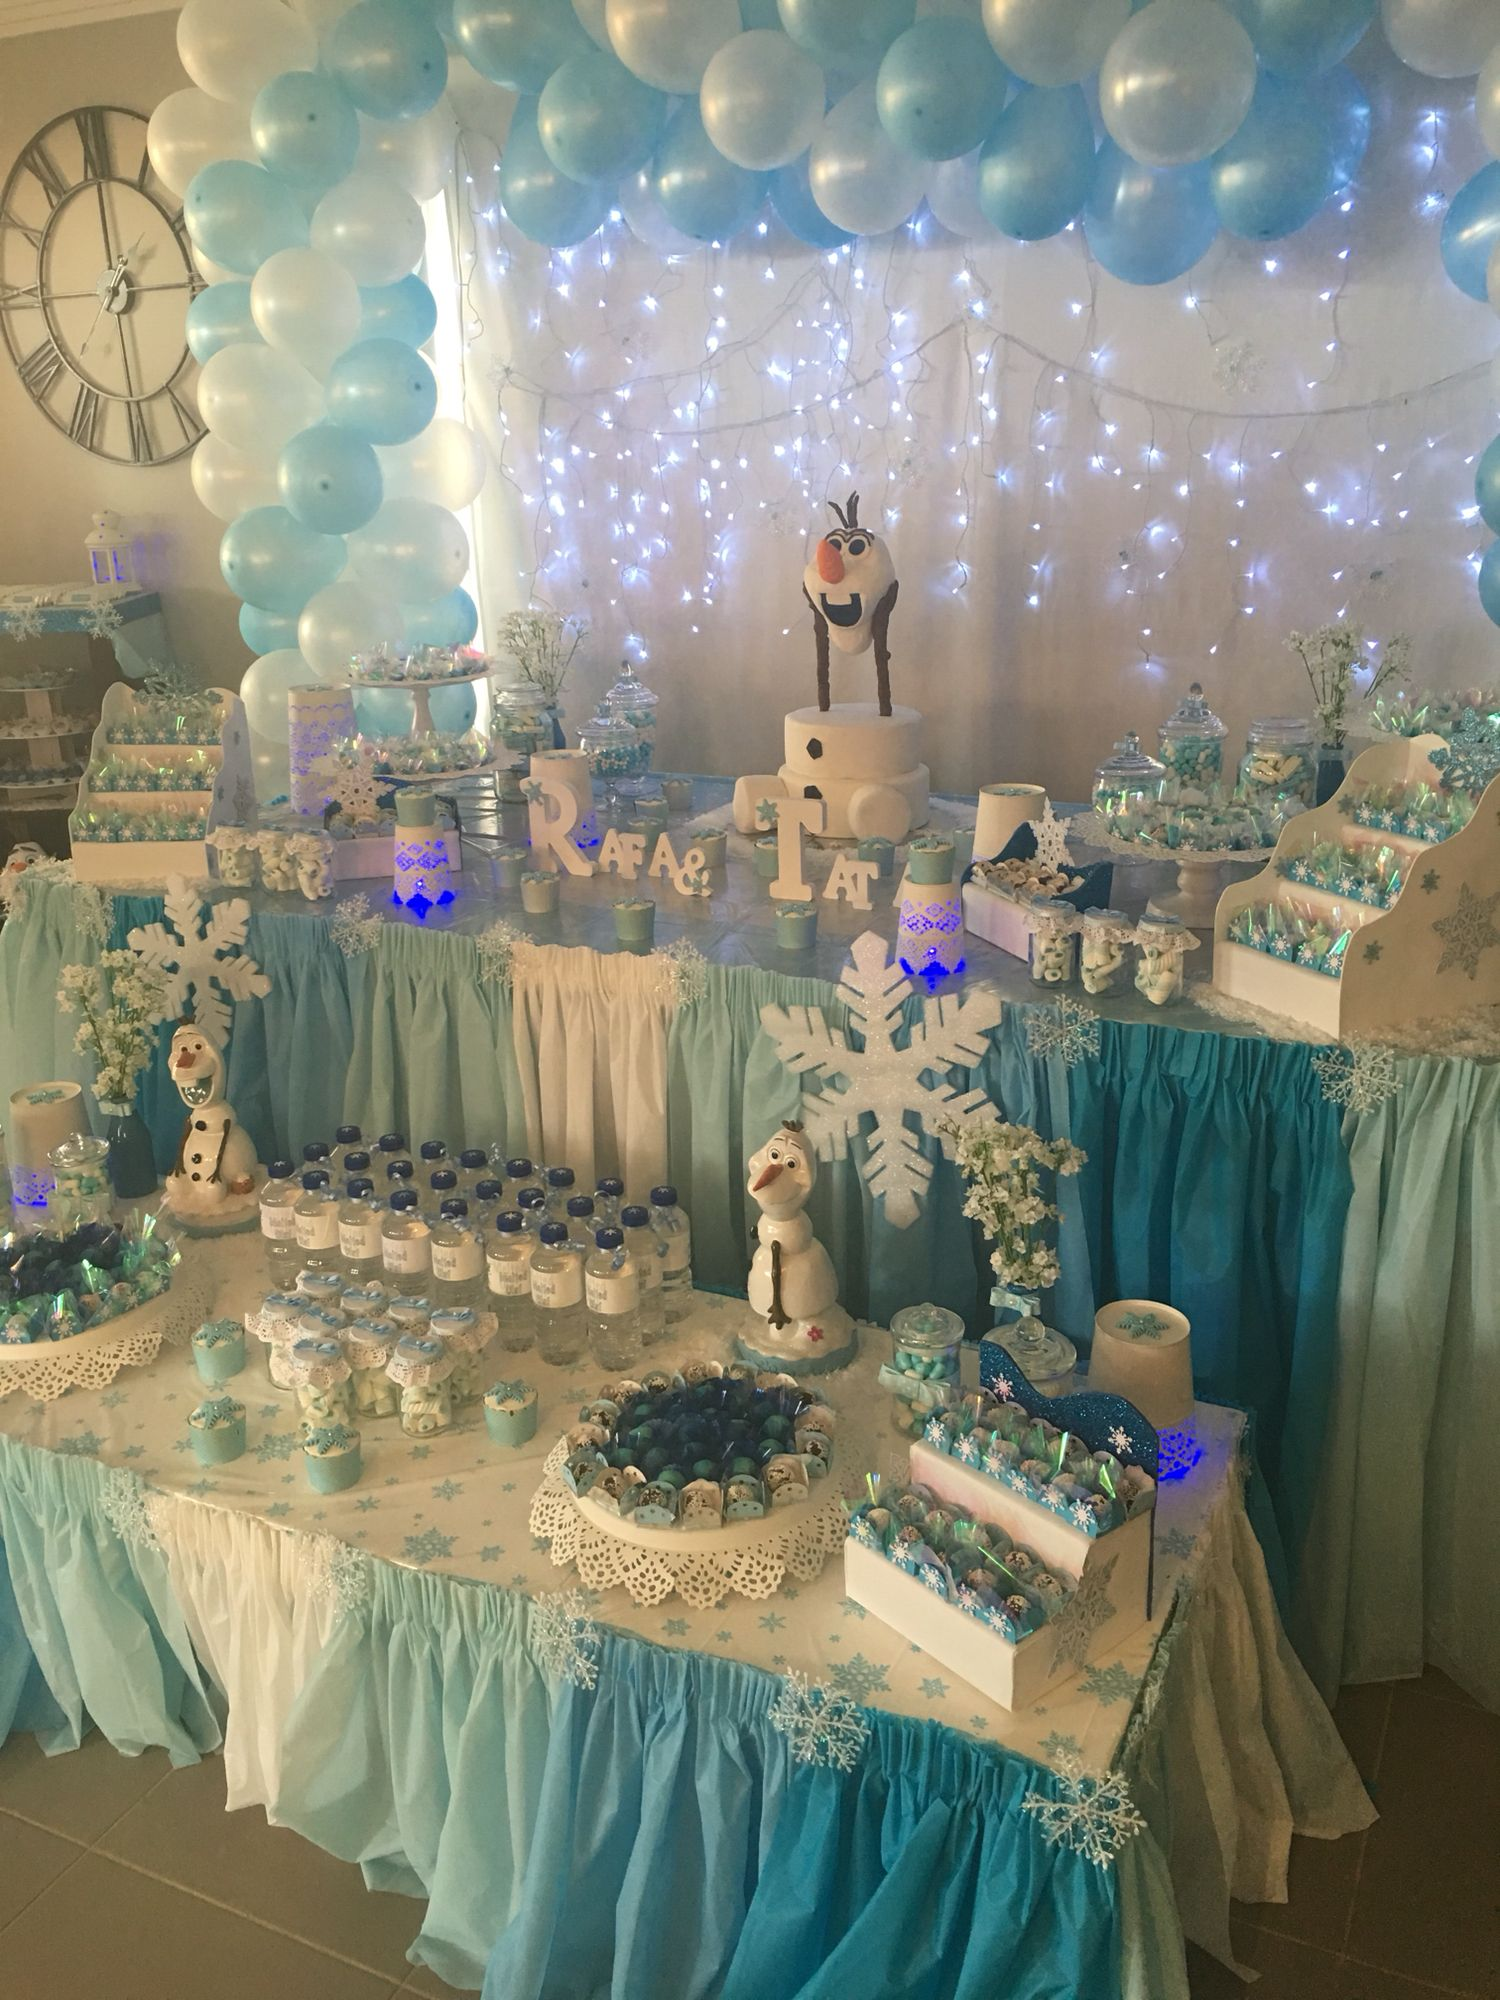 Beautiful table setting frozen olaf party decorations for Decoration themes